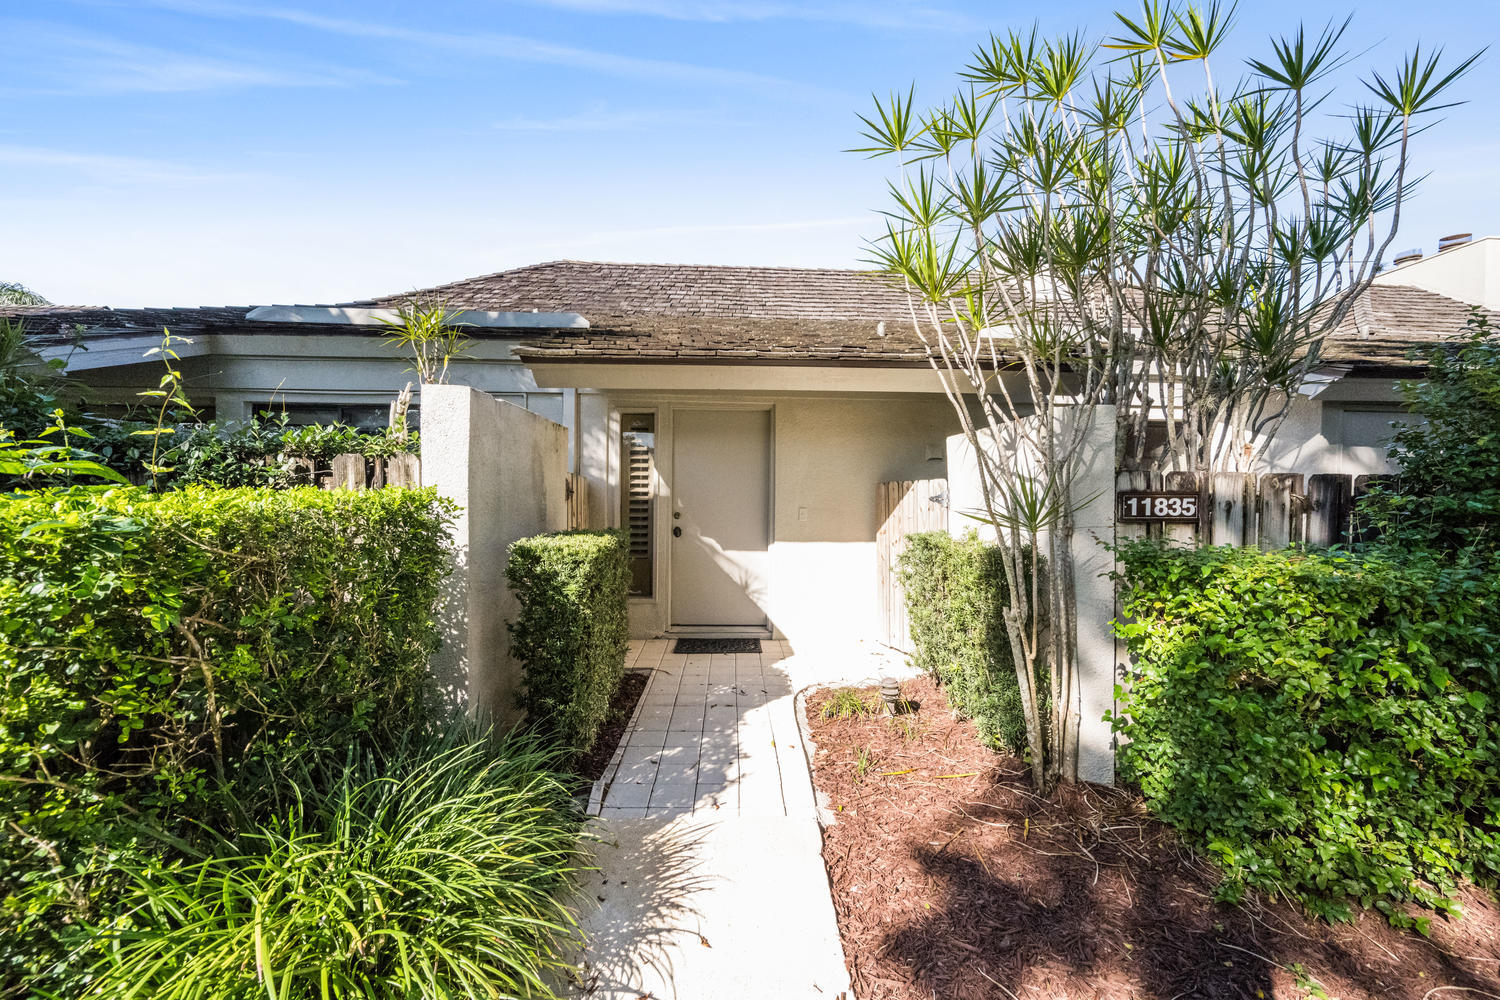 11835 Rene La Coste Place, Wellington, Florida 33414, 2 Bedrooms Bedrooms, ,2 BathroomsBathrooms,Villa,For Sale,Palm Beach Polo,Rene La Coste,RX-10590041